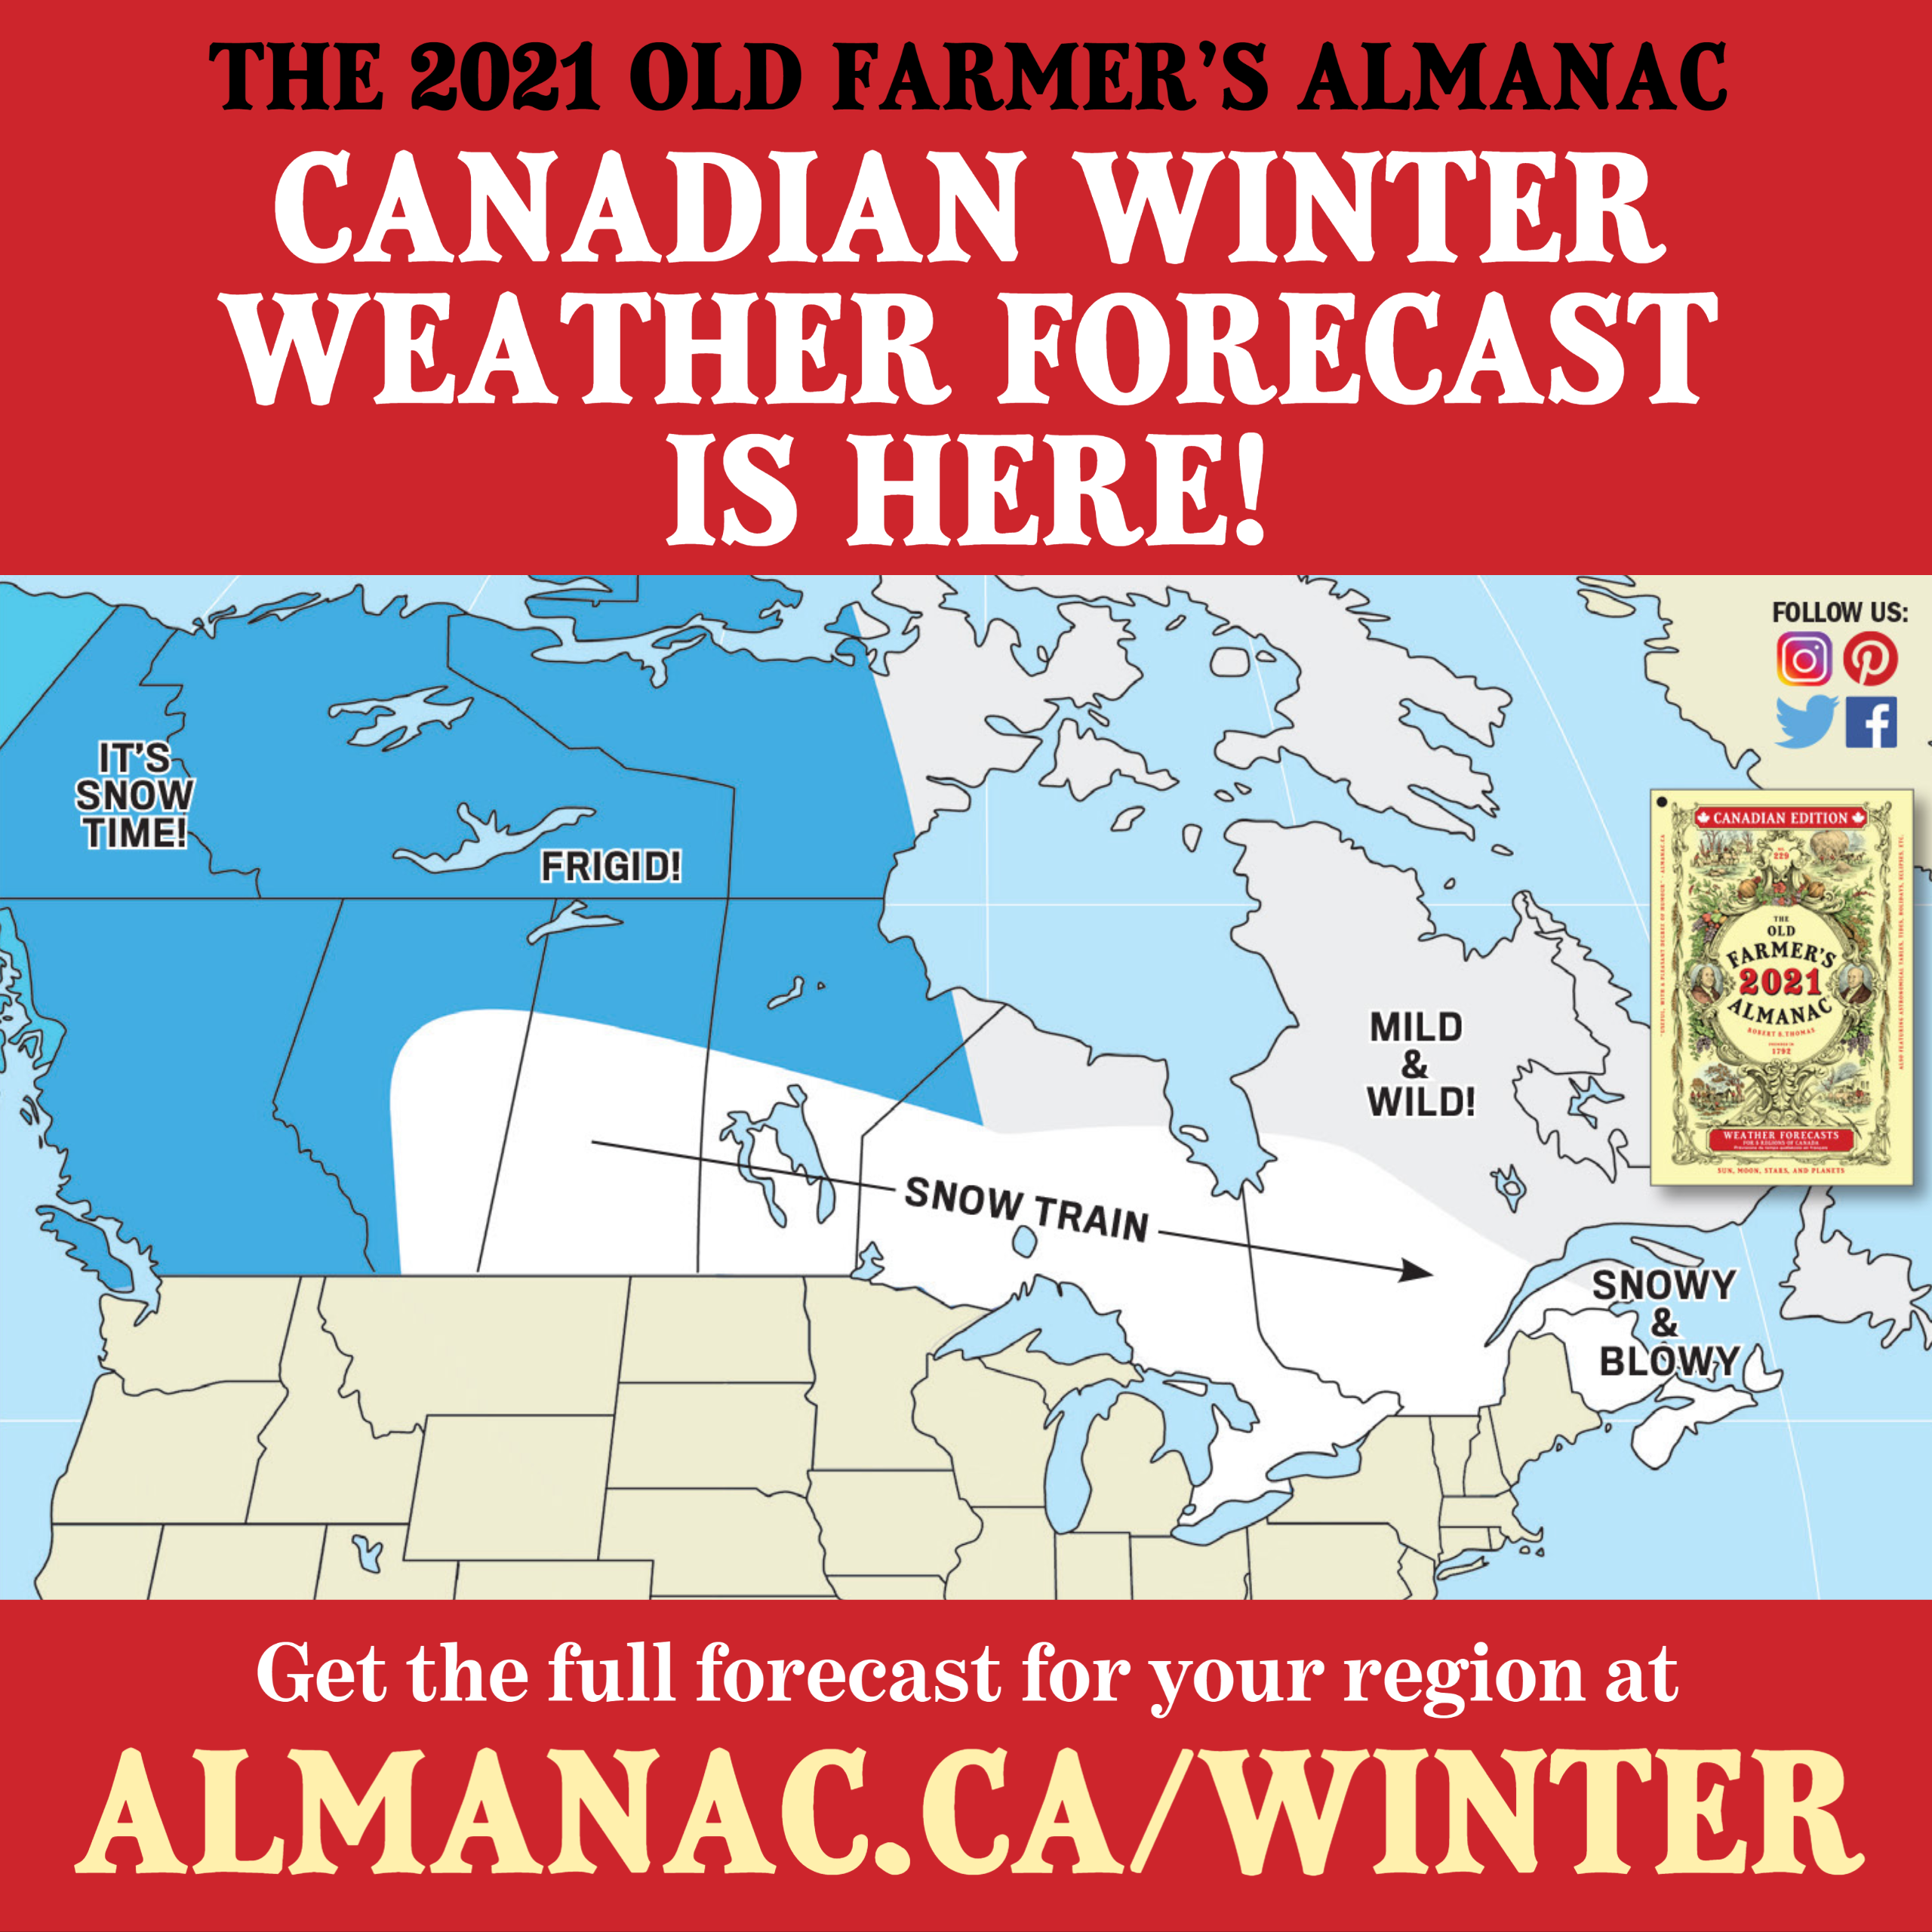 2020 2021 Canadian Winter Weather Forecast Winter Weather Forecast Old Farmers Almanac Canadian Winter